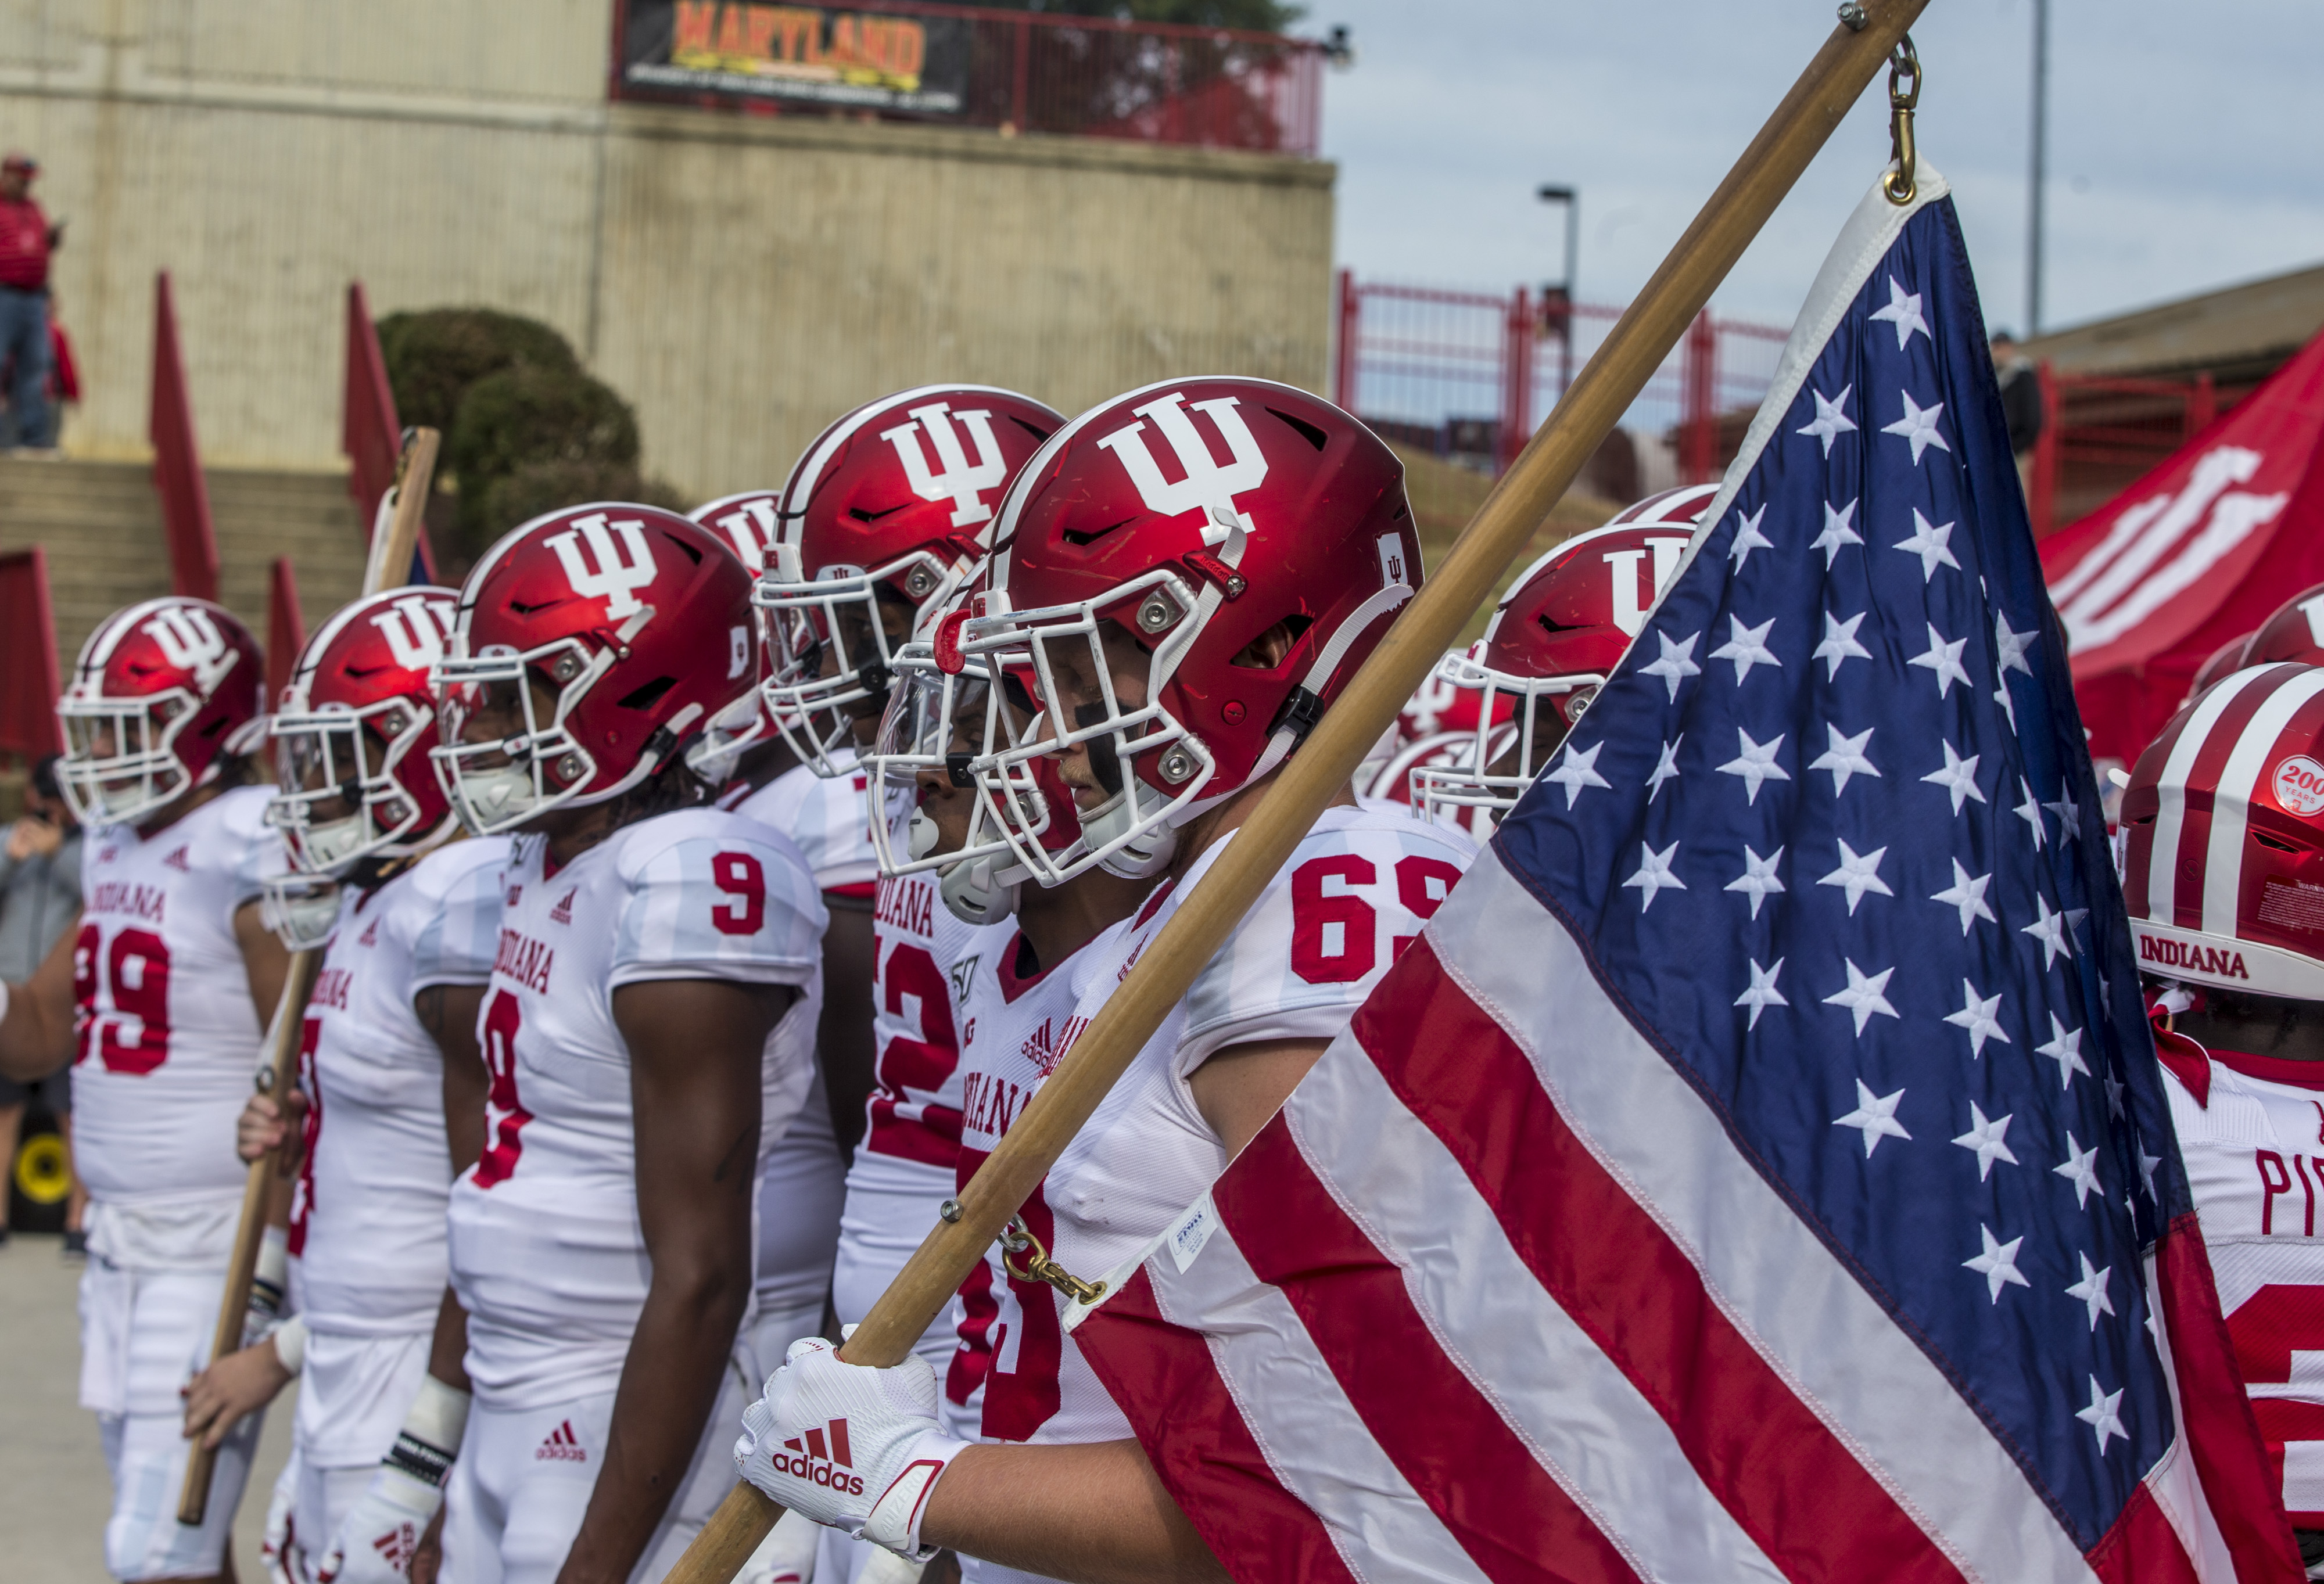 COLLEGE FOOTBALL: OCT 19 Indiana at Maryland